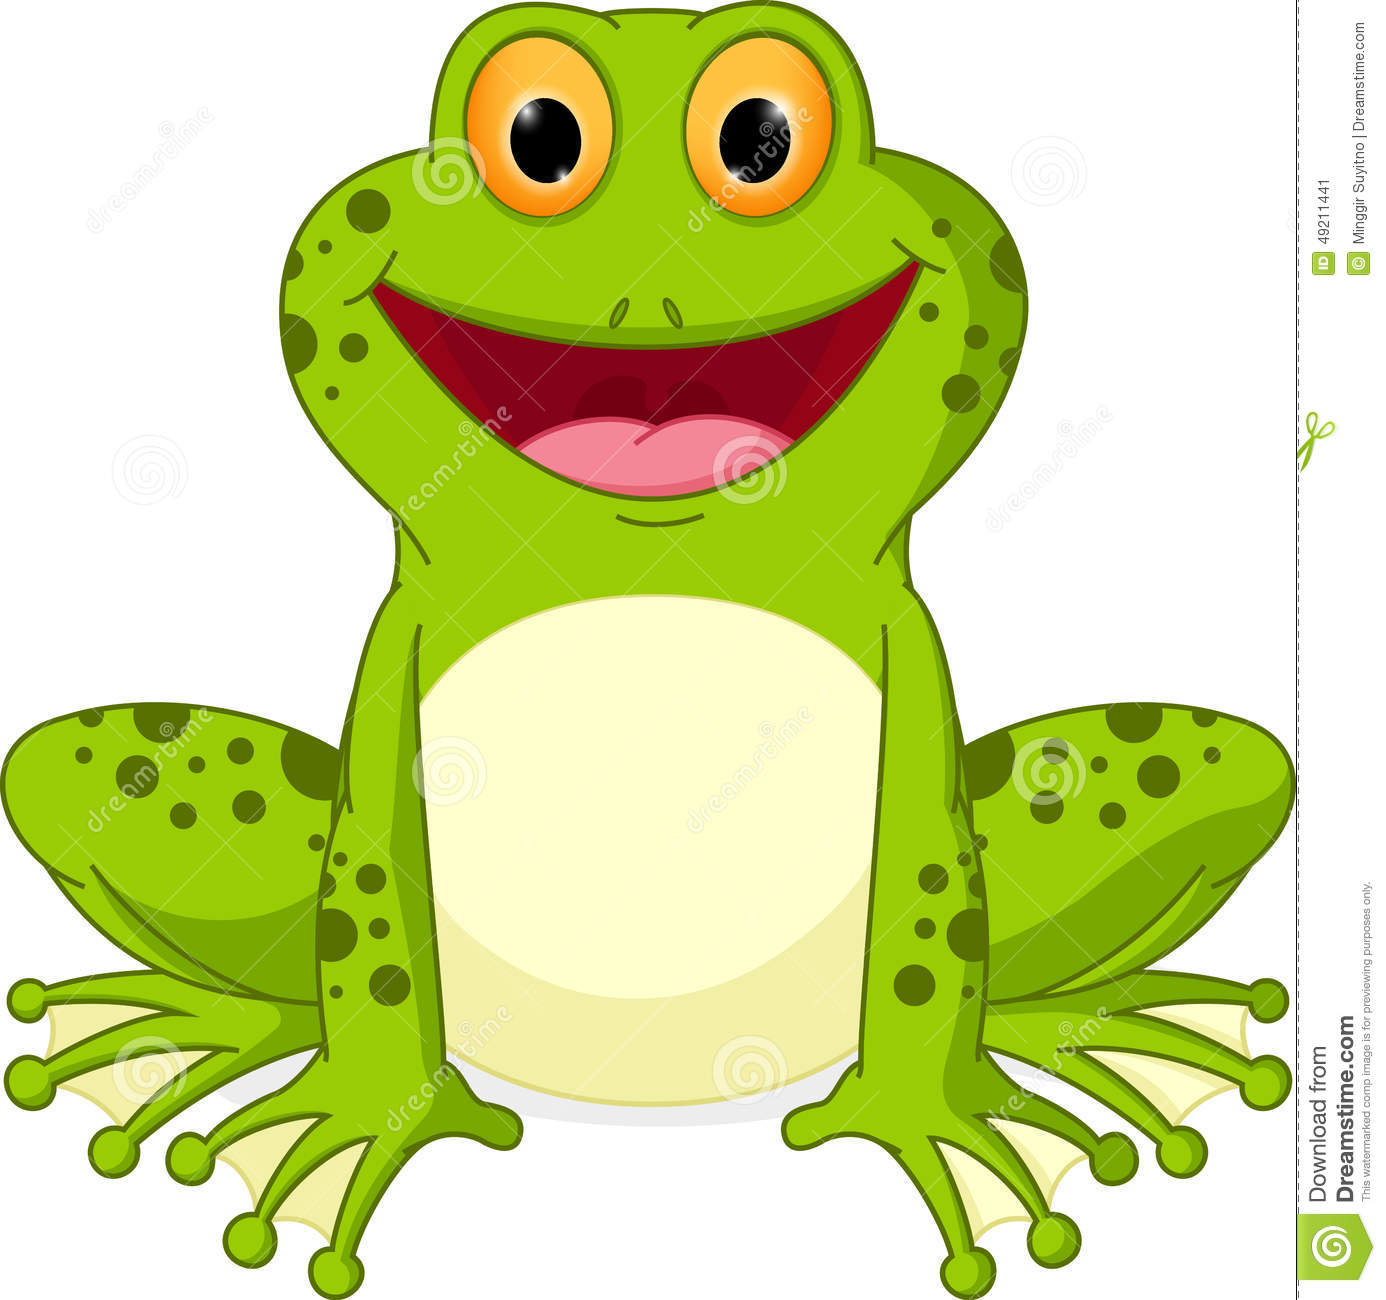 dessin anim u00e9 heureux de grenouille illustration de vecteur free frog and toad clipart frog and toad clipart